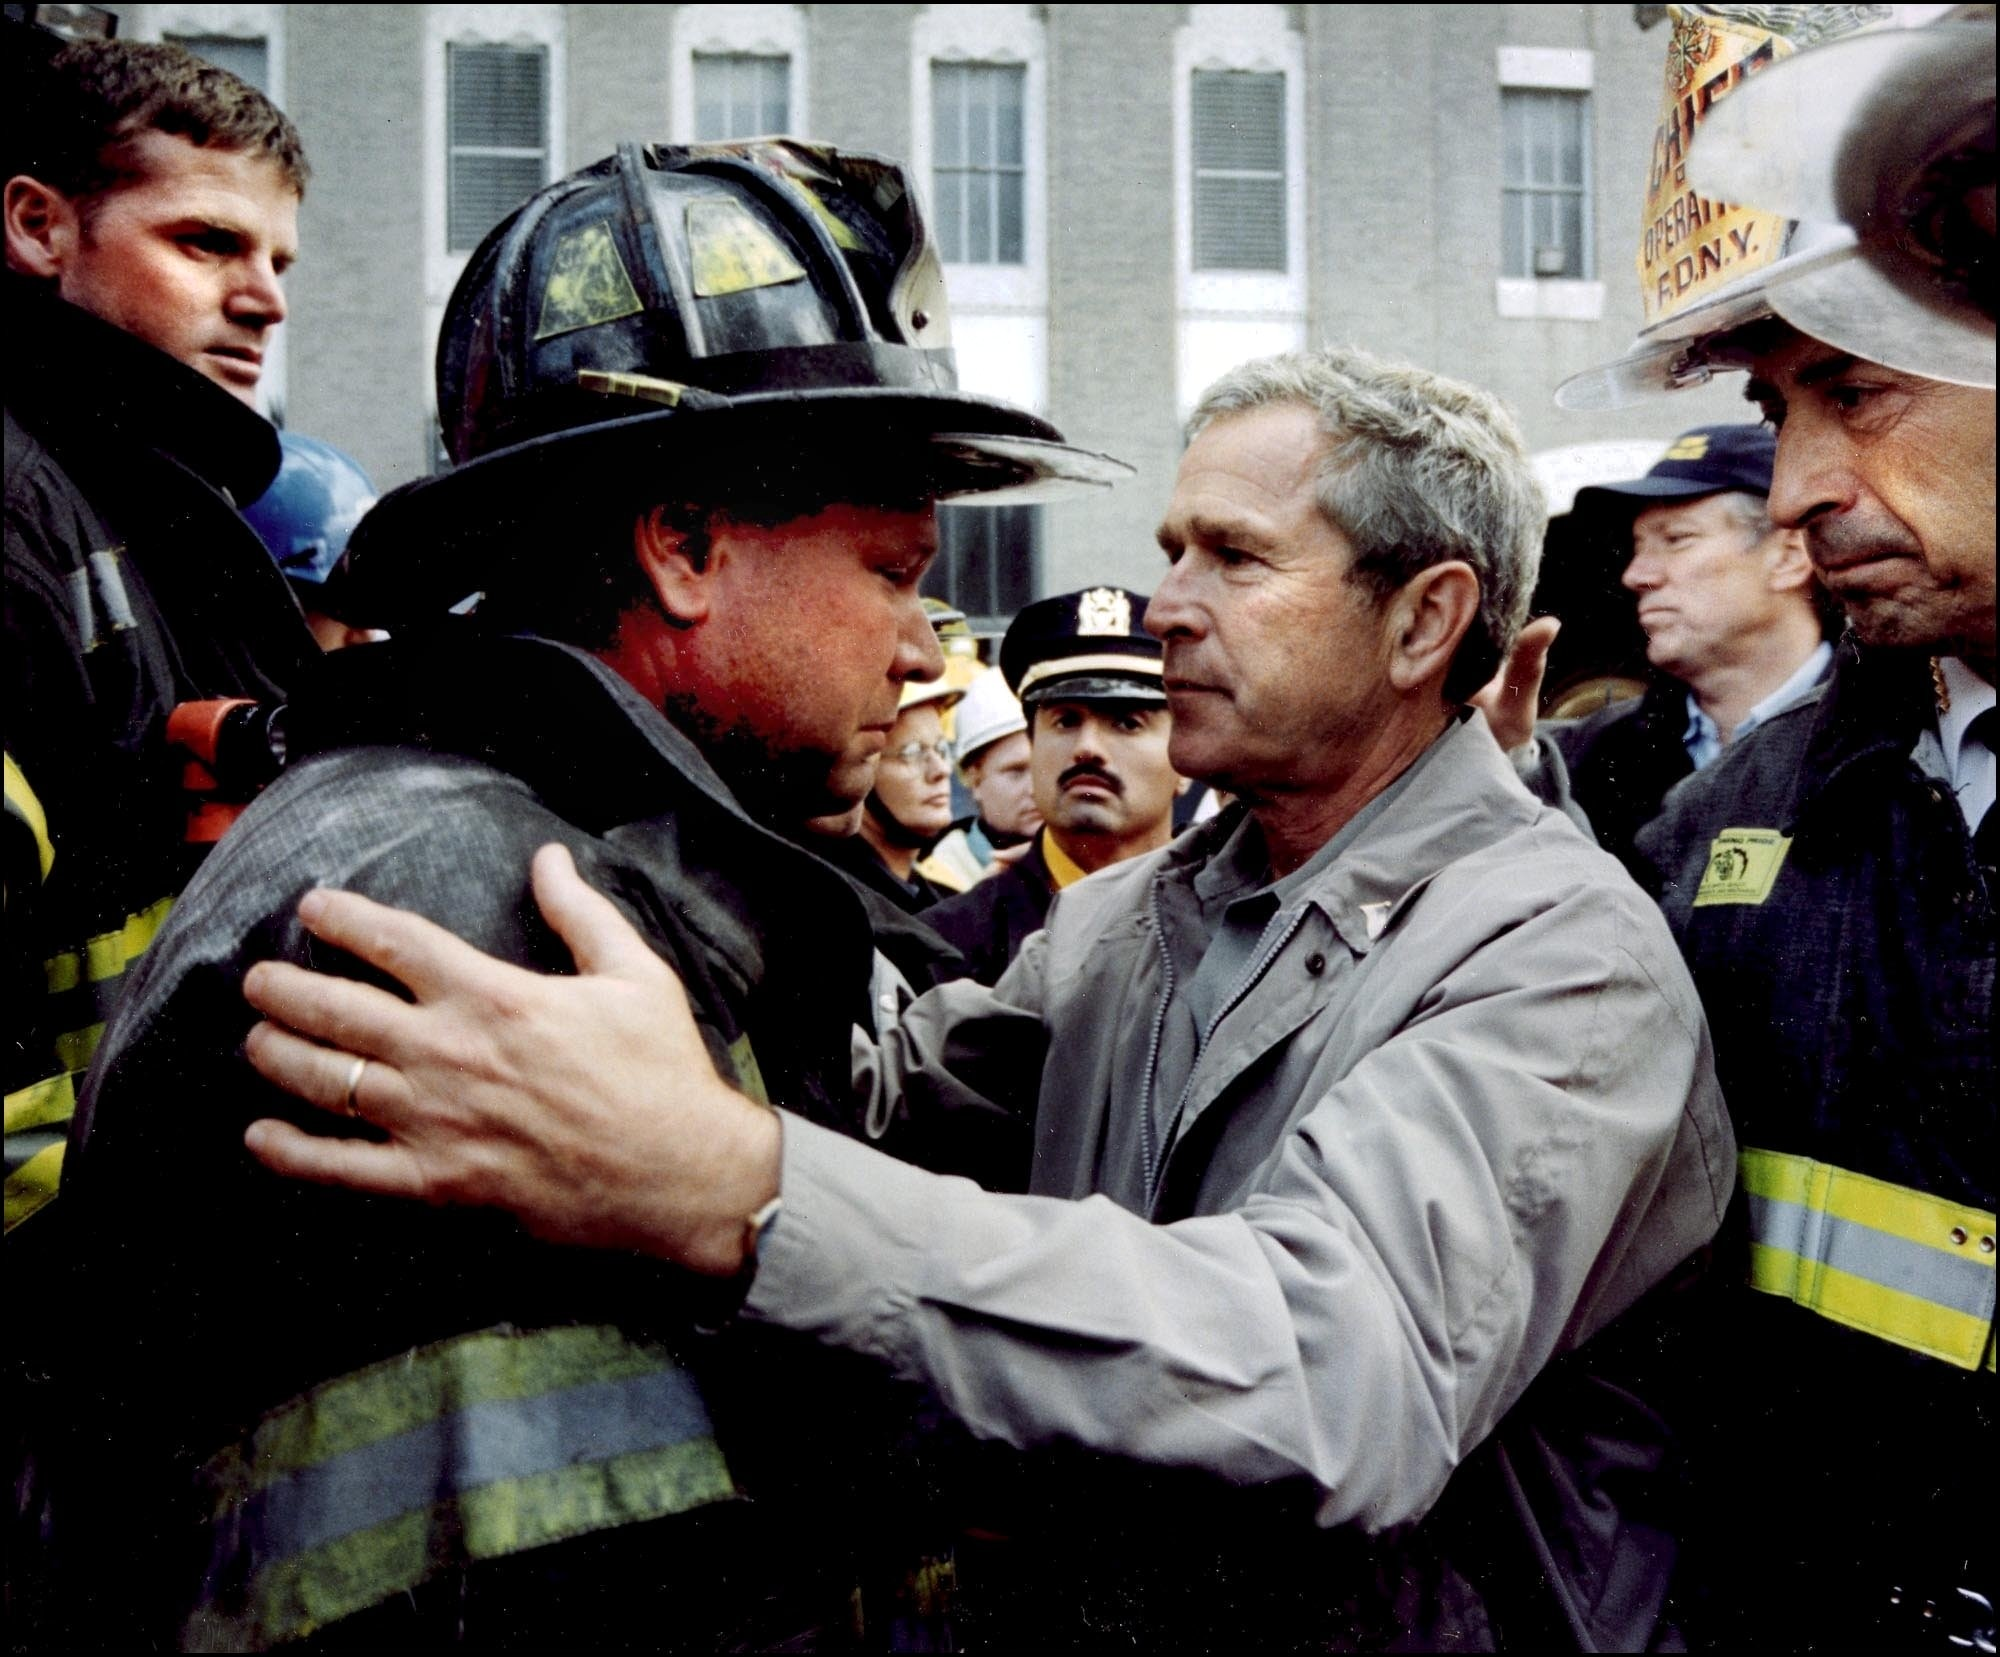 On Sept. 14, 2001, in New York City, President George Bush comforts New York City Fire Dept Lt Lenard Phelan of Battalion 46, following the terrorist attacks on the on the World Trade Center.